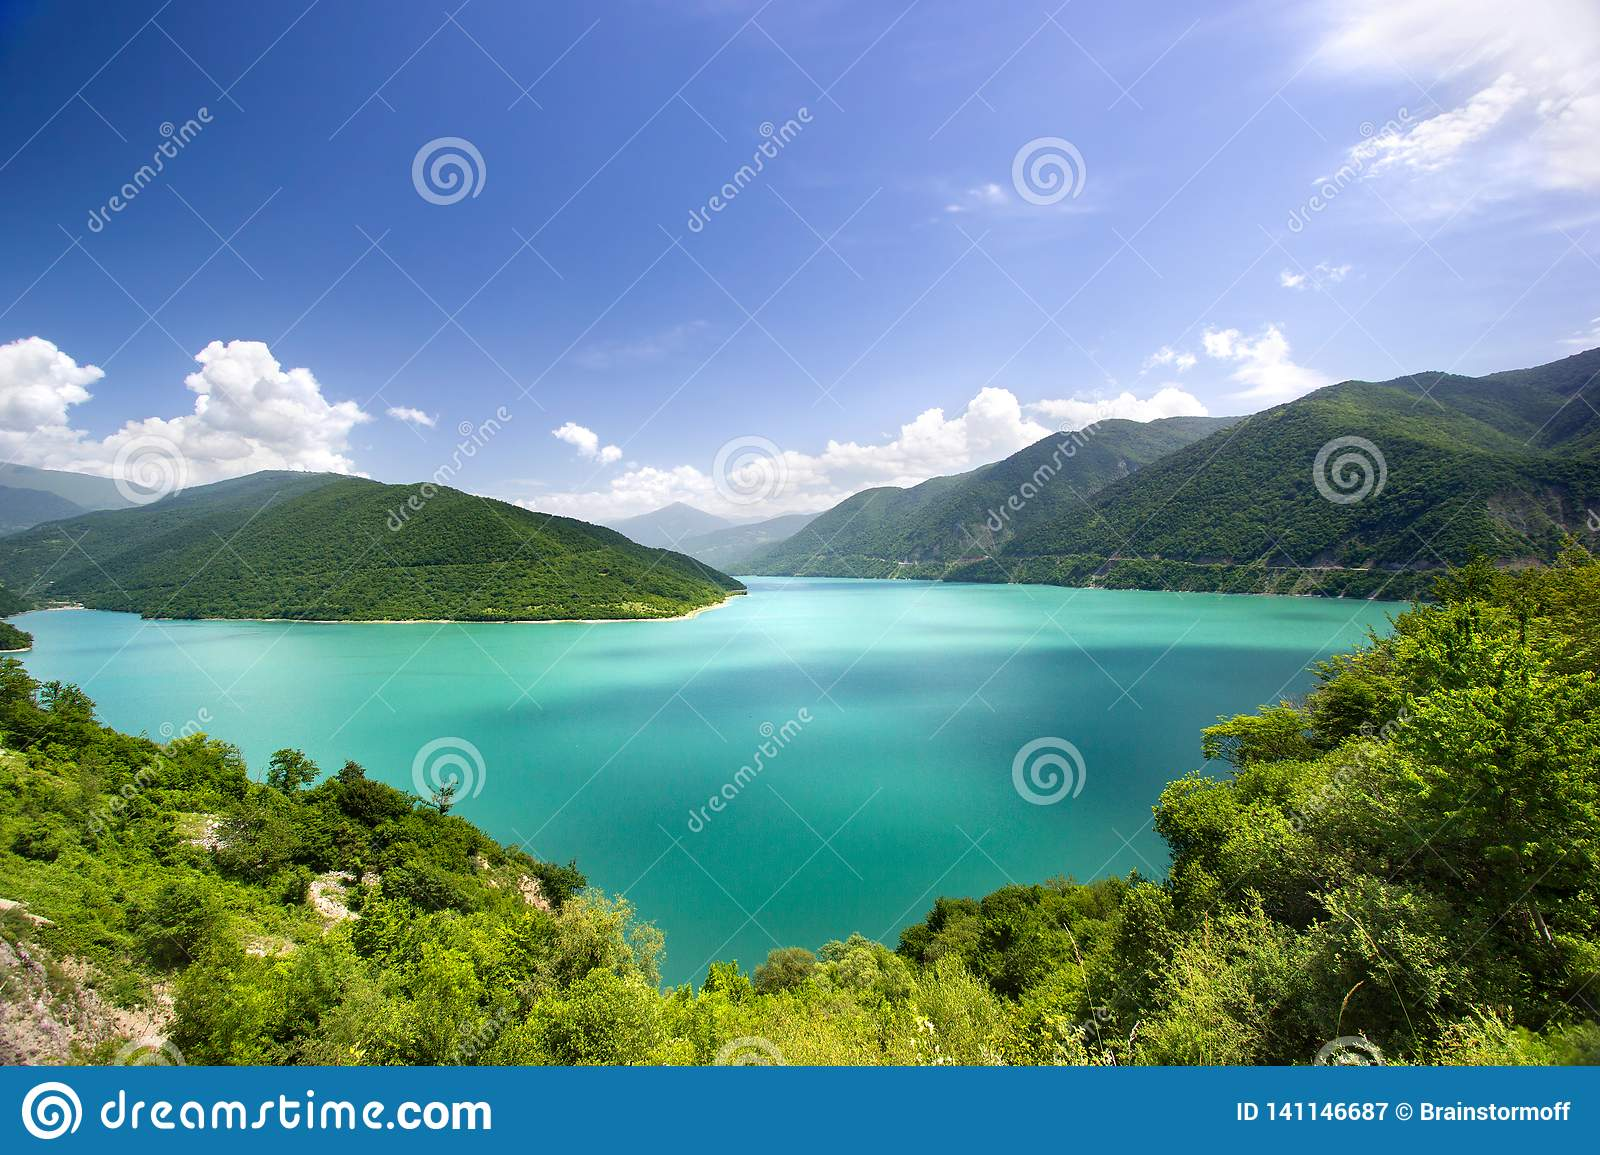 Azure water in a blue lagoon among green mountains blue sky white clouds background